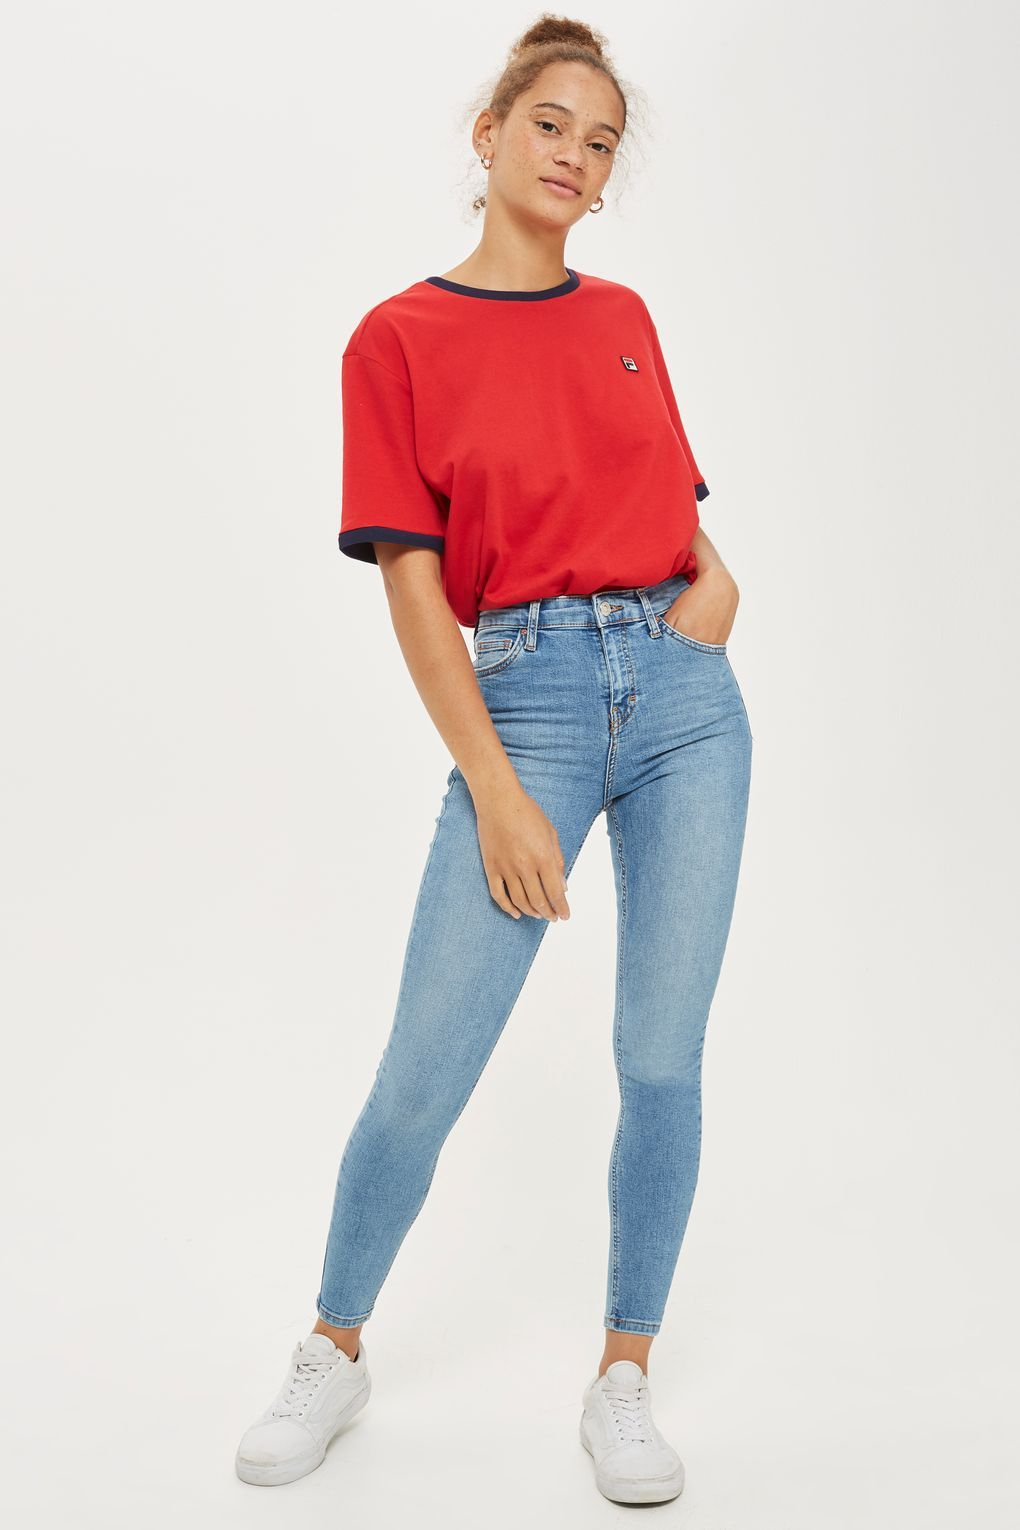 d3ffe8964c9d Carousel Image 2 Jean Outfits, Mom Jeans, Skinny Jeans, Carousel, Curves,